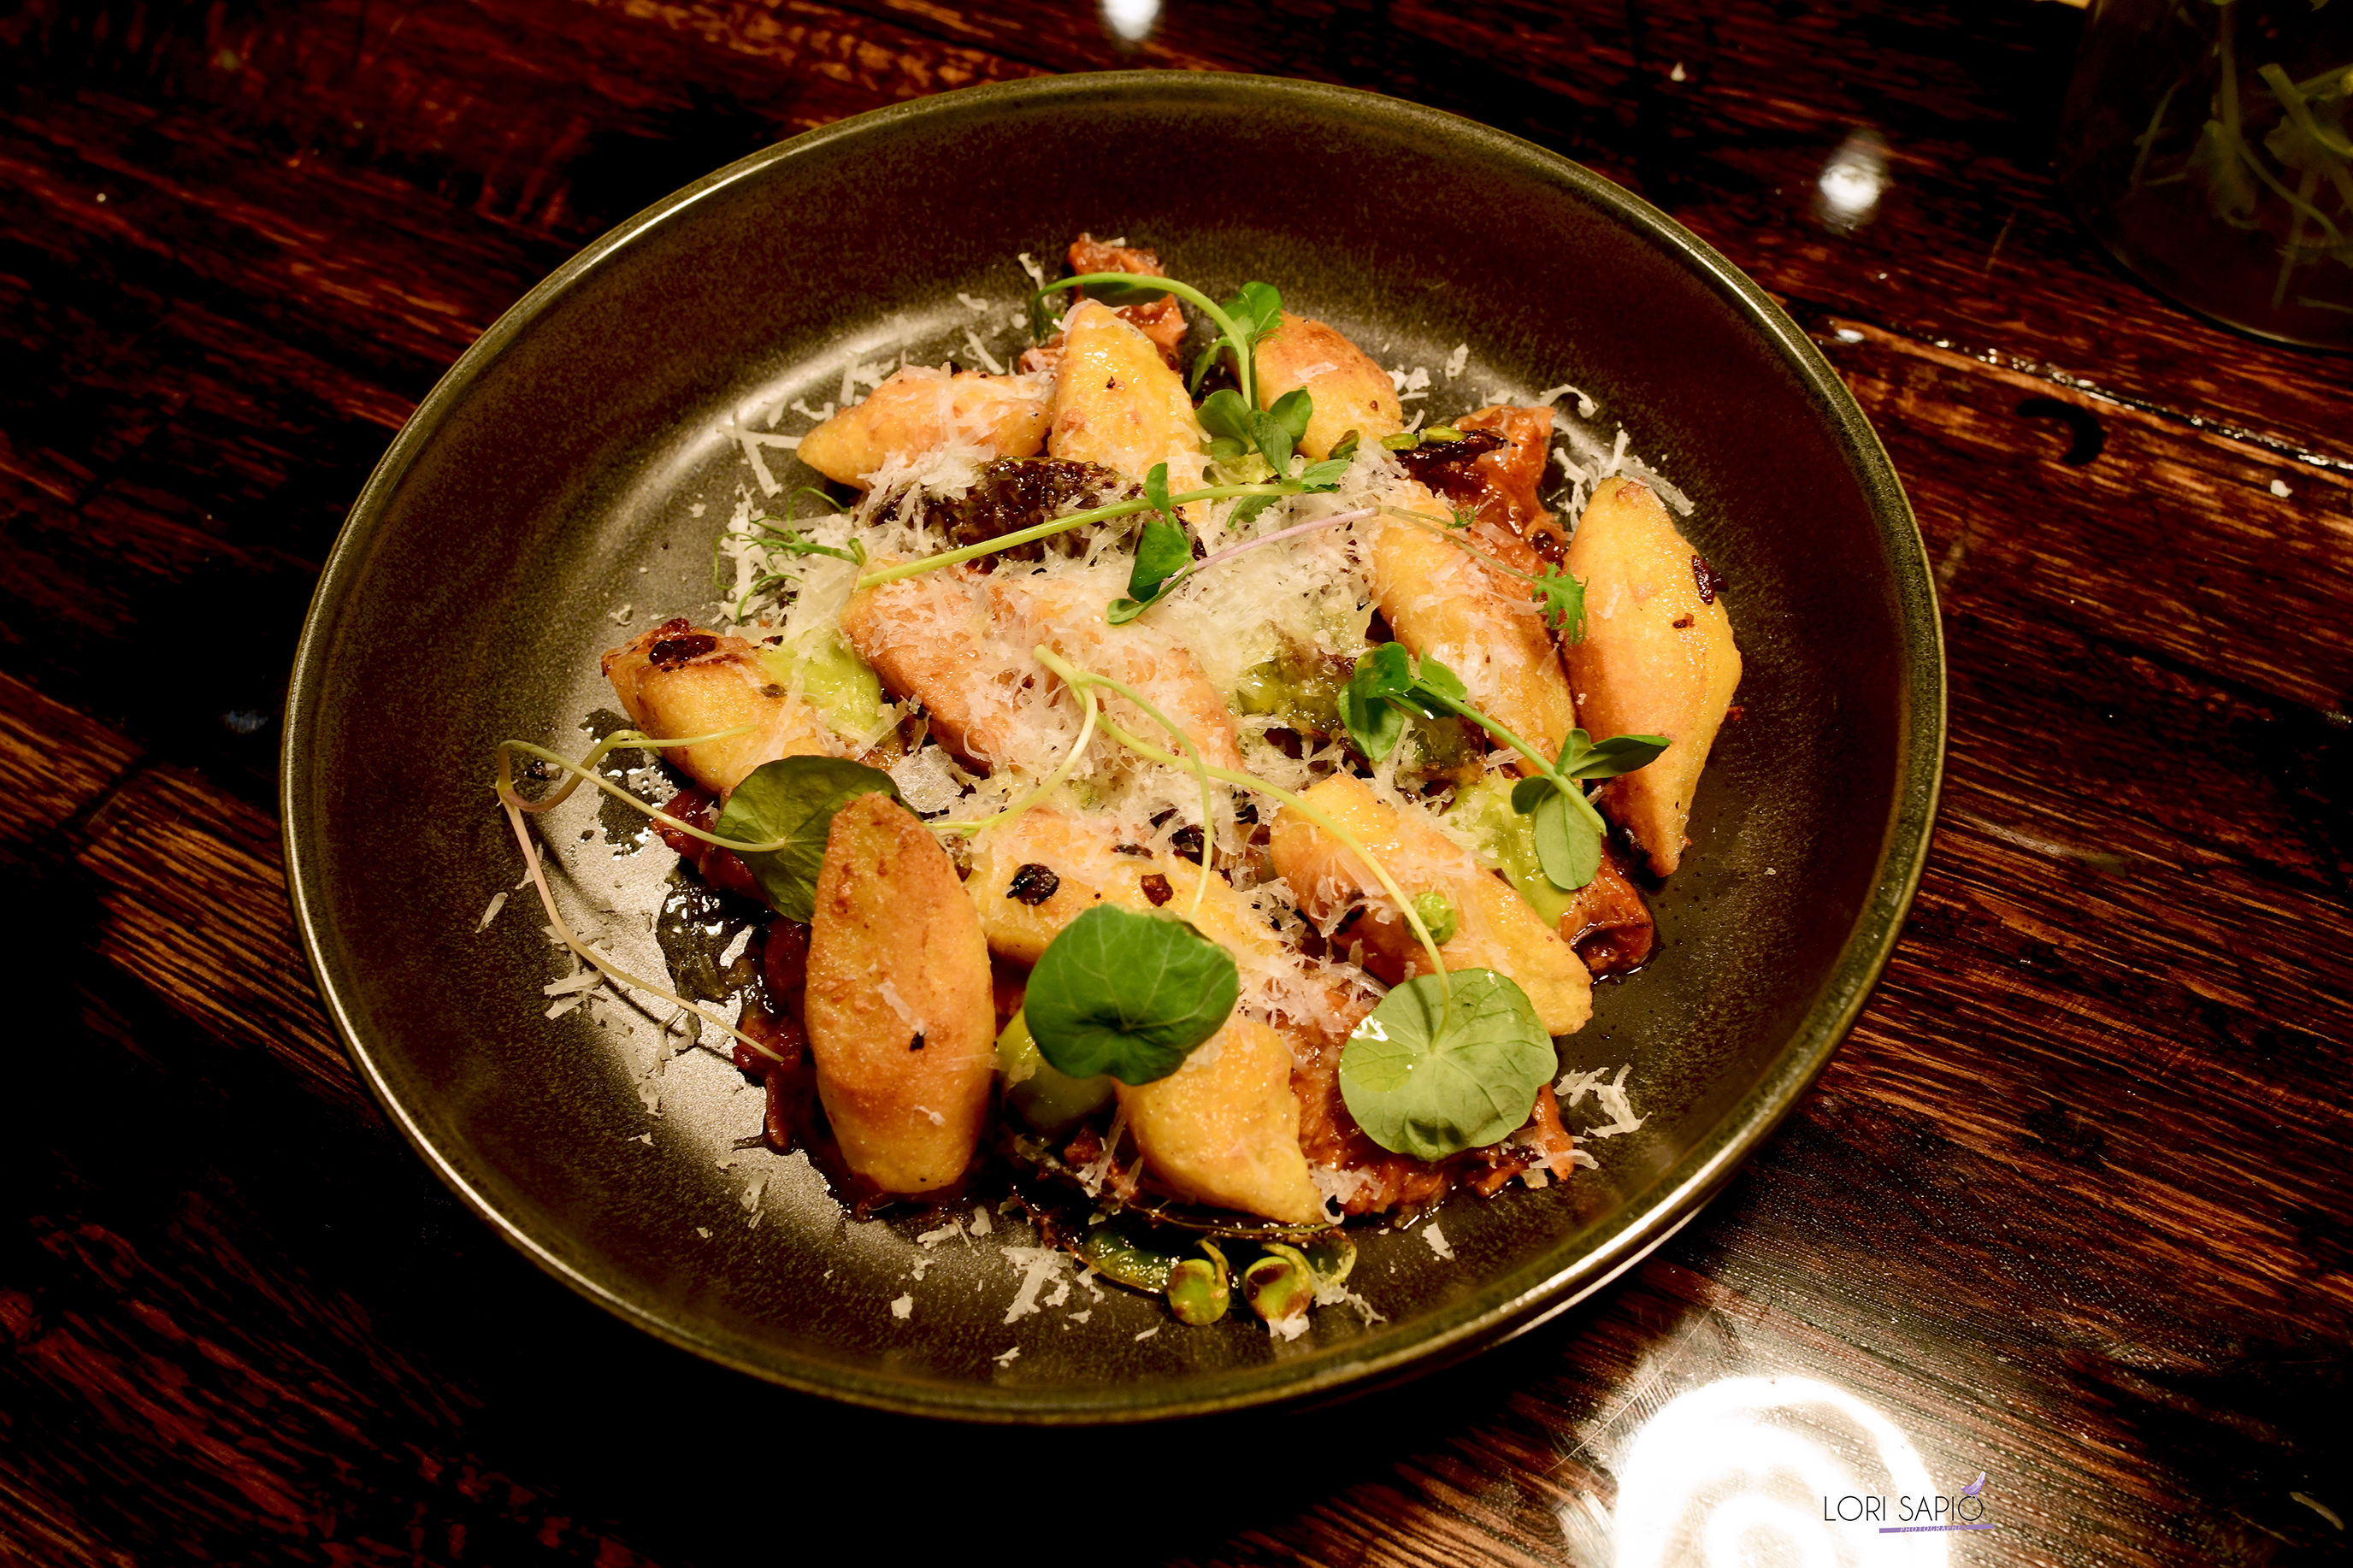 A small pile of orange-colored yucca dumplings sit on a charcoal-colored plate and are topped with shredded cheese and herb leafs.